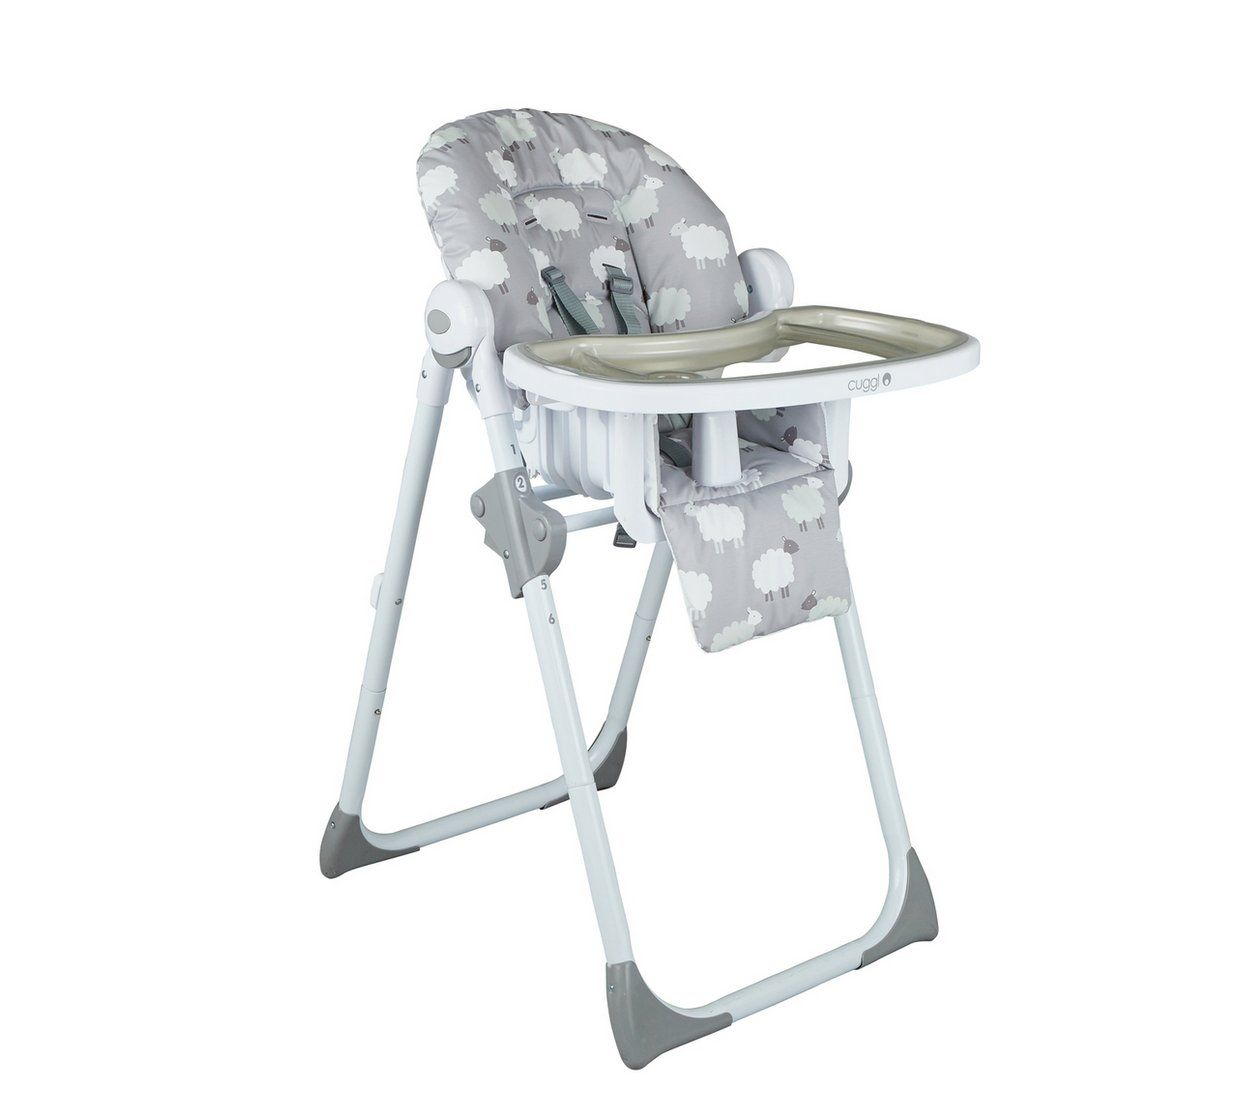 Baby Chairs Argos Cuggl Deluxe Highchair Sheep For Baby Chair Toddler